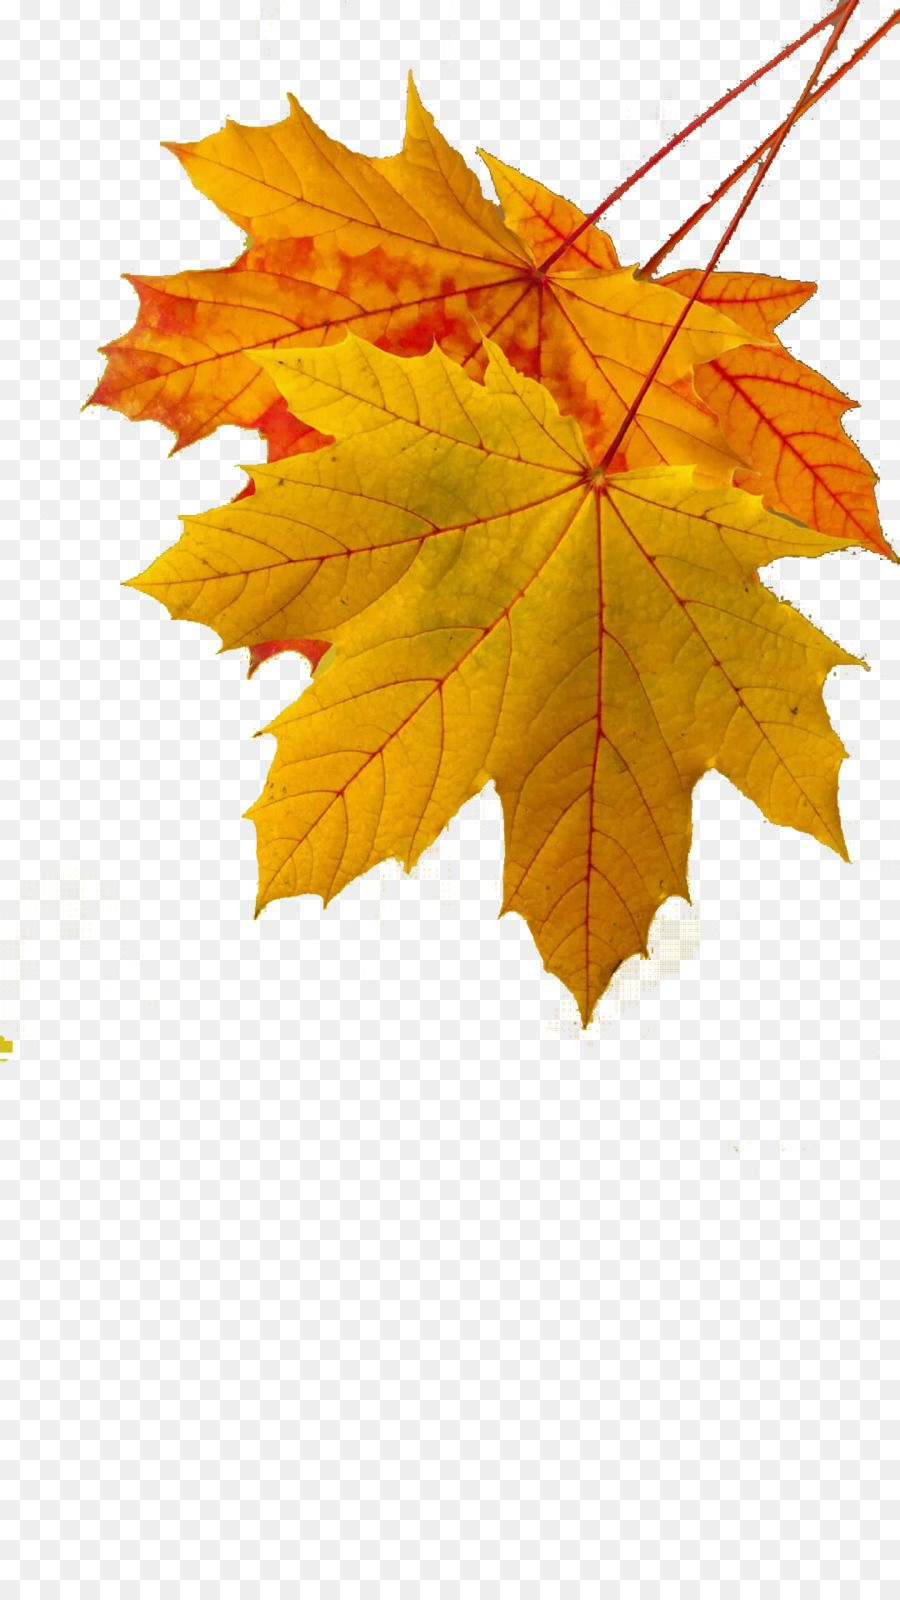 Maple Leaf Autumn Leaf Color Yellow Golden Autumn Leaves Png Is About Is About Orange Tree Maple Tree Leaf M Autumn Leaf Color Autumn Leaves Tree Drawing